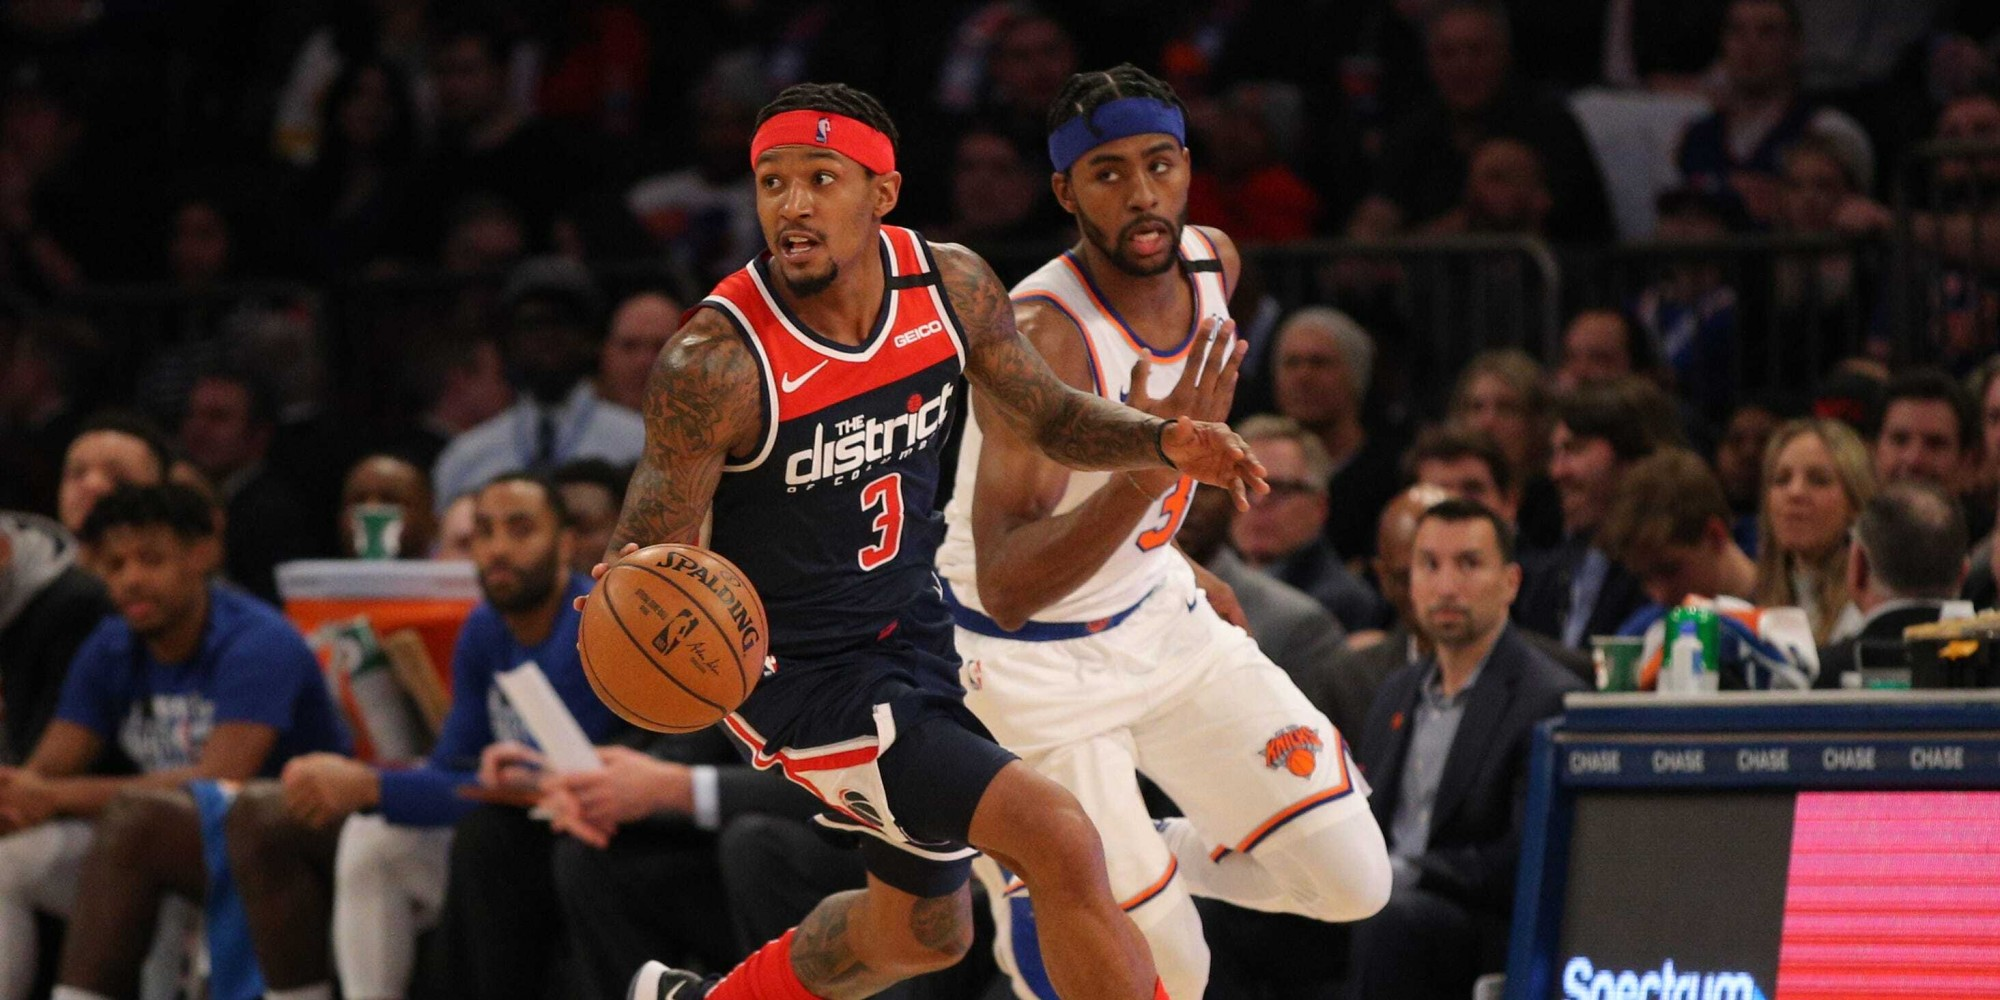 Knicks Fall Apart Against Wizards in Last Game Pre-ASB | The Knicks Wall